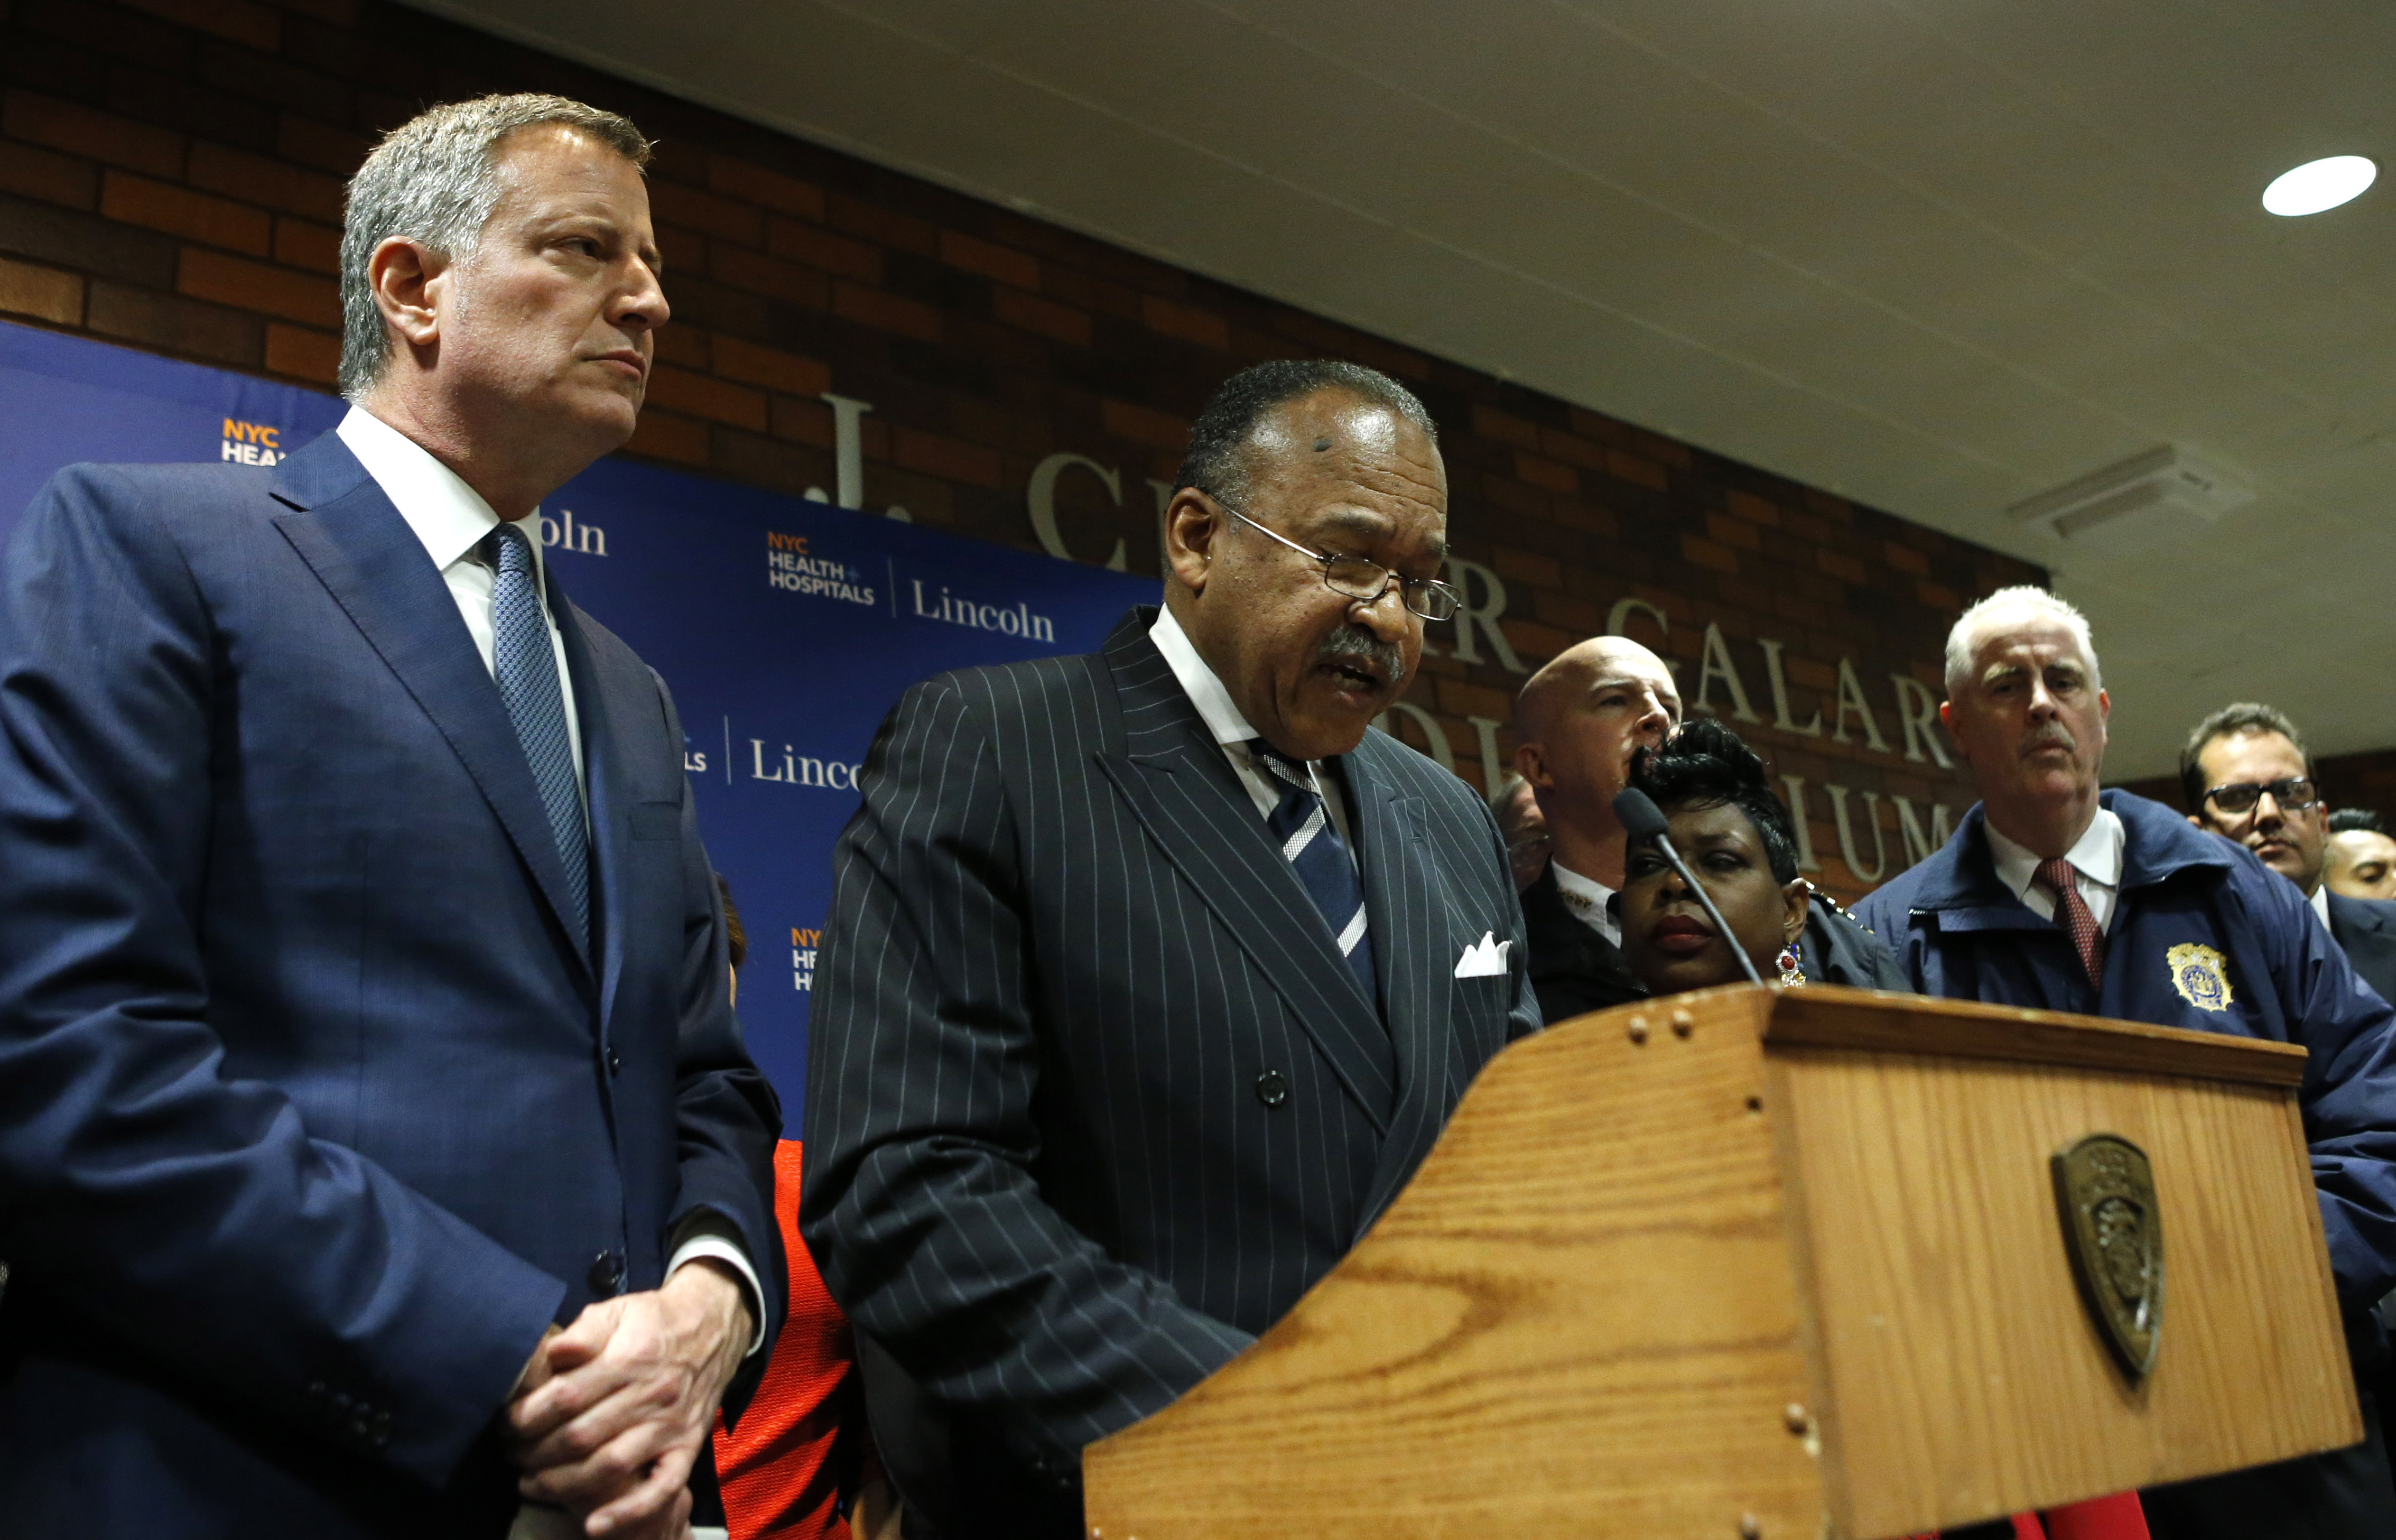 CORRECTS ID OF MAN AT RIGHT TO NYPD CHIEF OF DETECTIVES ROBERT BOYCE, NOT JAMES O'NEILL - New York City Mayor Bill de Blasio listens as New York City Police First Deputy Commissioner Benjamin Tucker speaks at a hastily called press conference at Lincoln Hospital, Thursday, Feb. 4, 2016, in the Bronx borough of New York after two New York City police officers were shot in a public housing complex int he Bronx by an armed suspect who apparently turned the weapon on himself not far from where de Blasio was delivering his state of the city address Thursday evening. New York City Police Department Chief of Detectives Robert Boyce, listens, right. (AP Photo/Kathy Willens)